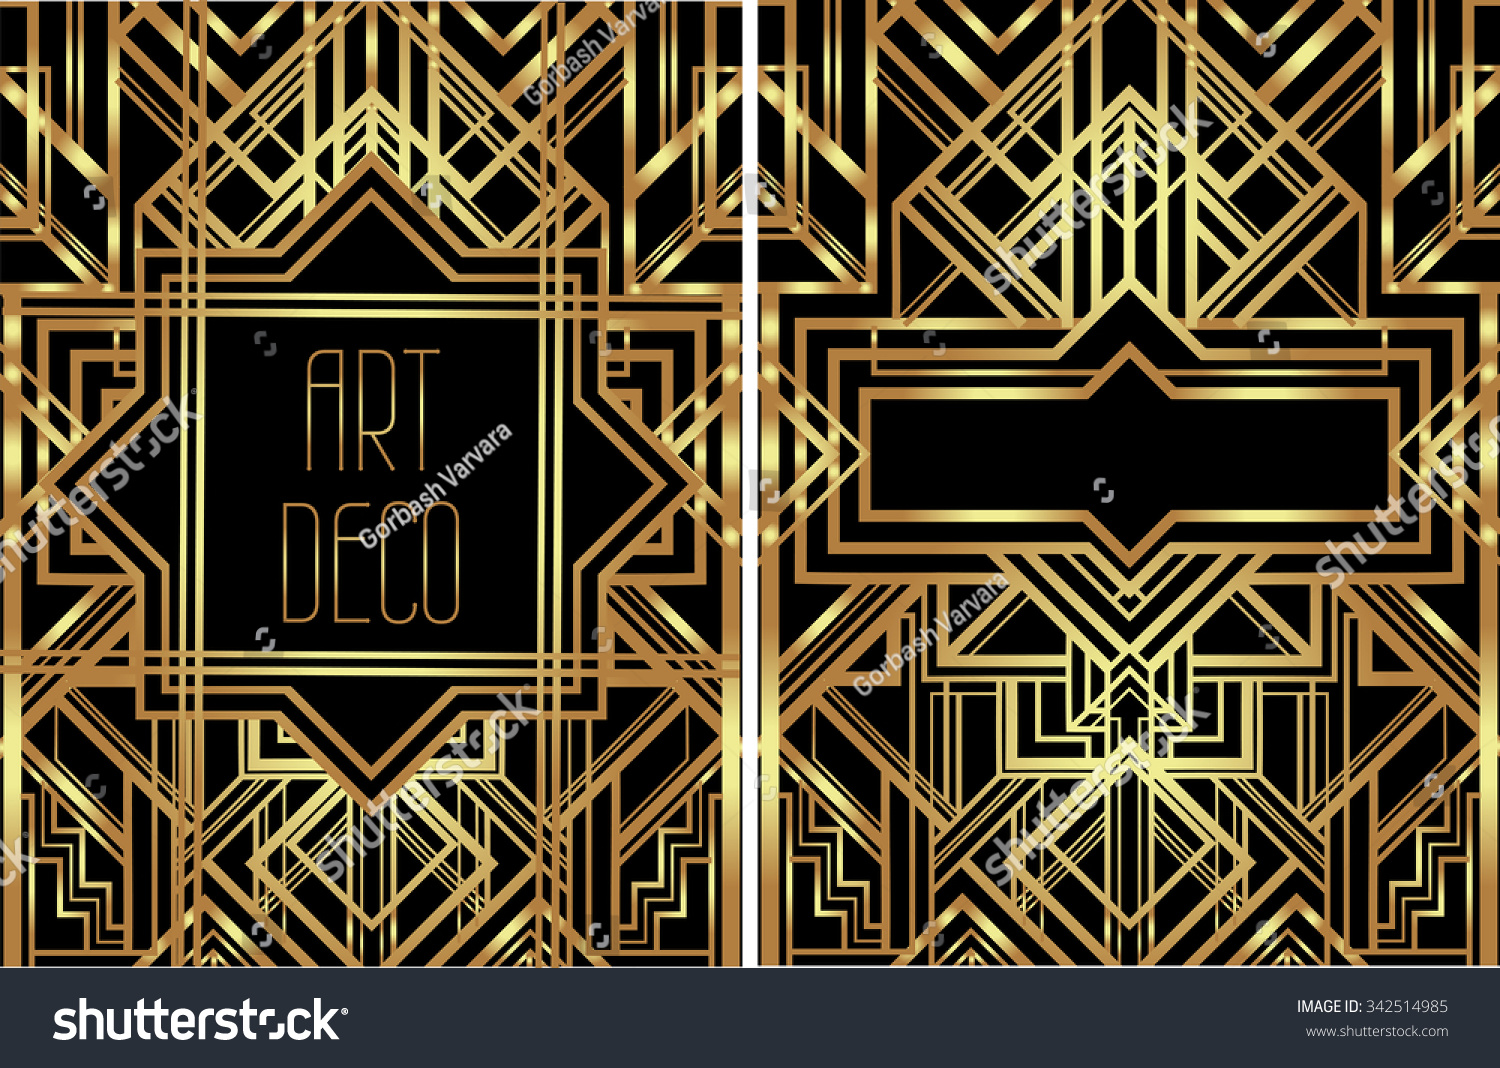 art deco vintage patterns frames retro stock vector. Black Bedroom Furniture Sets. Home Design Ideas